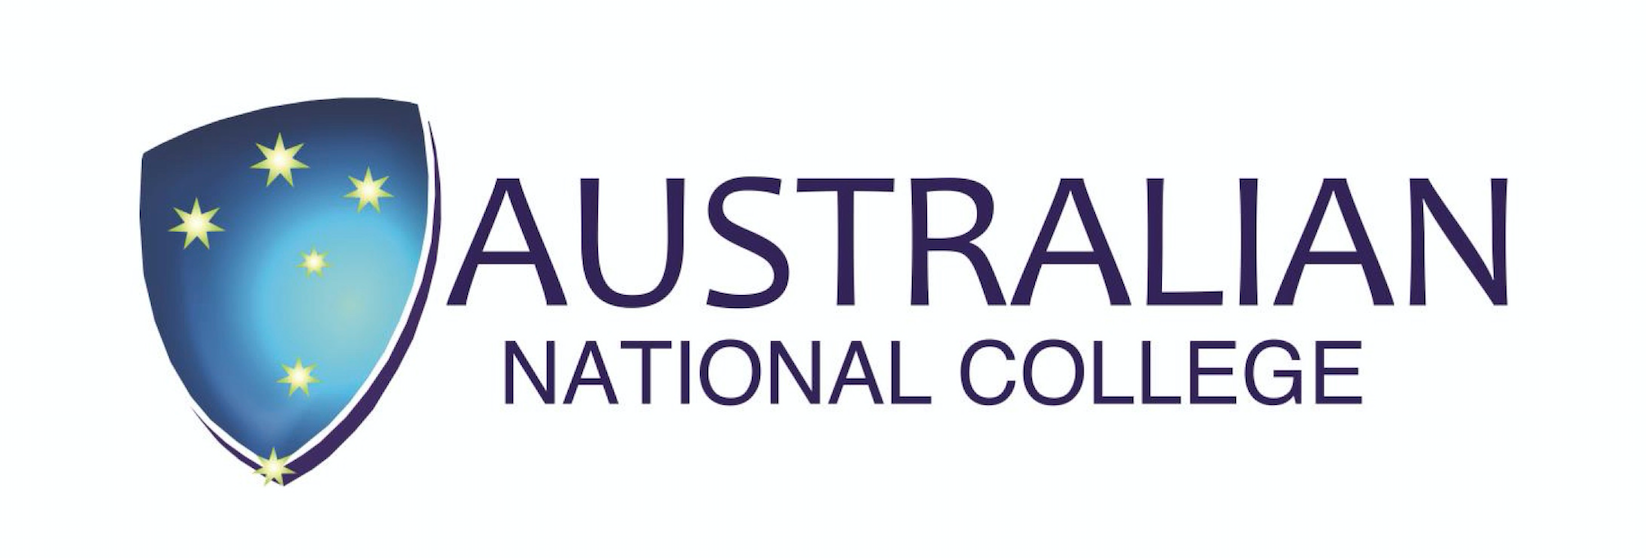 AUSTRALIAN NATIONAL COLLEGE